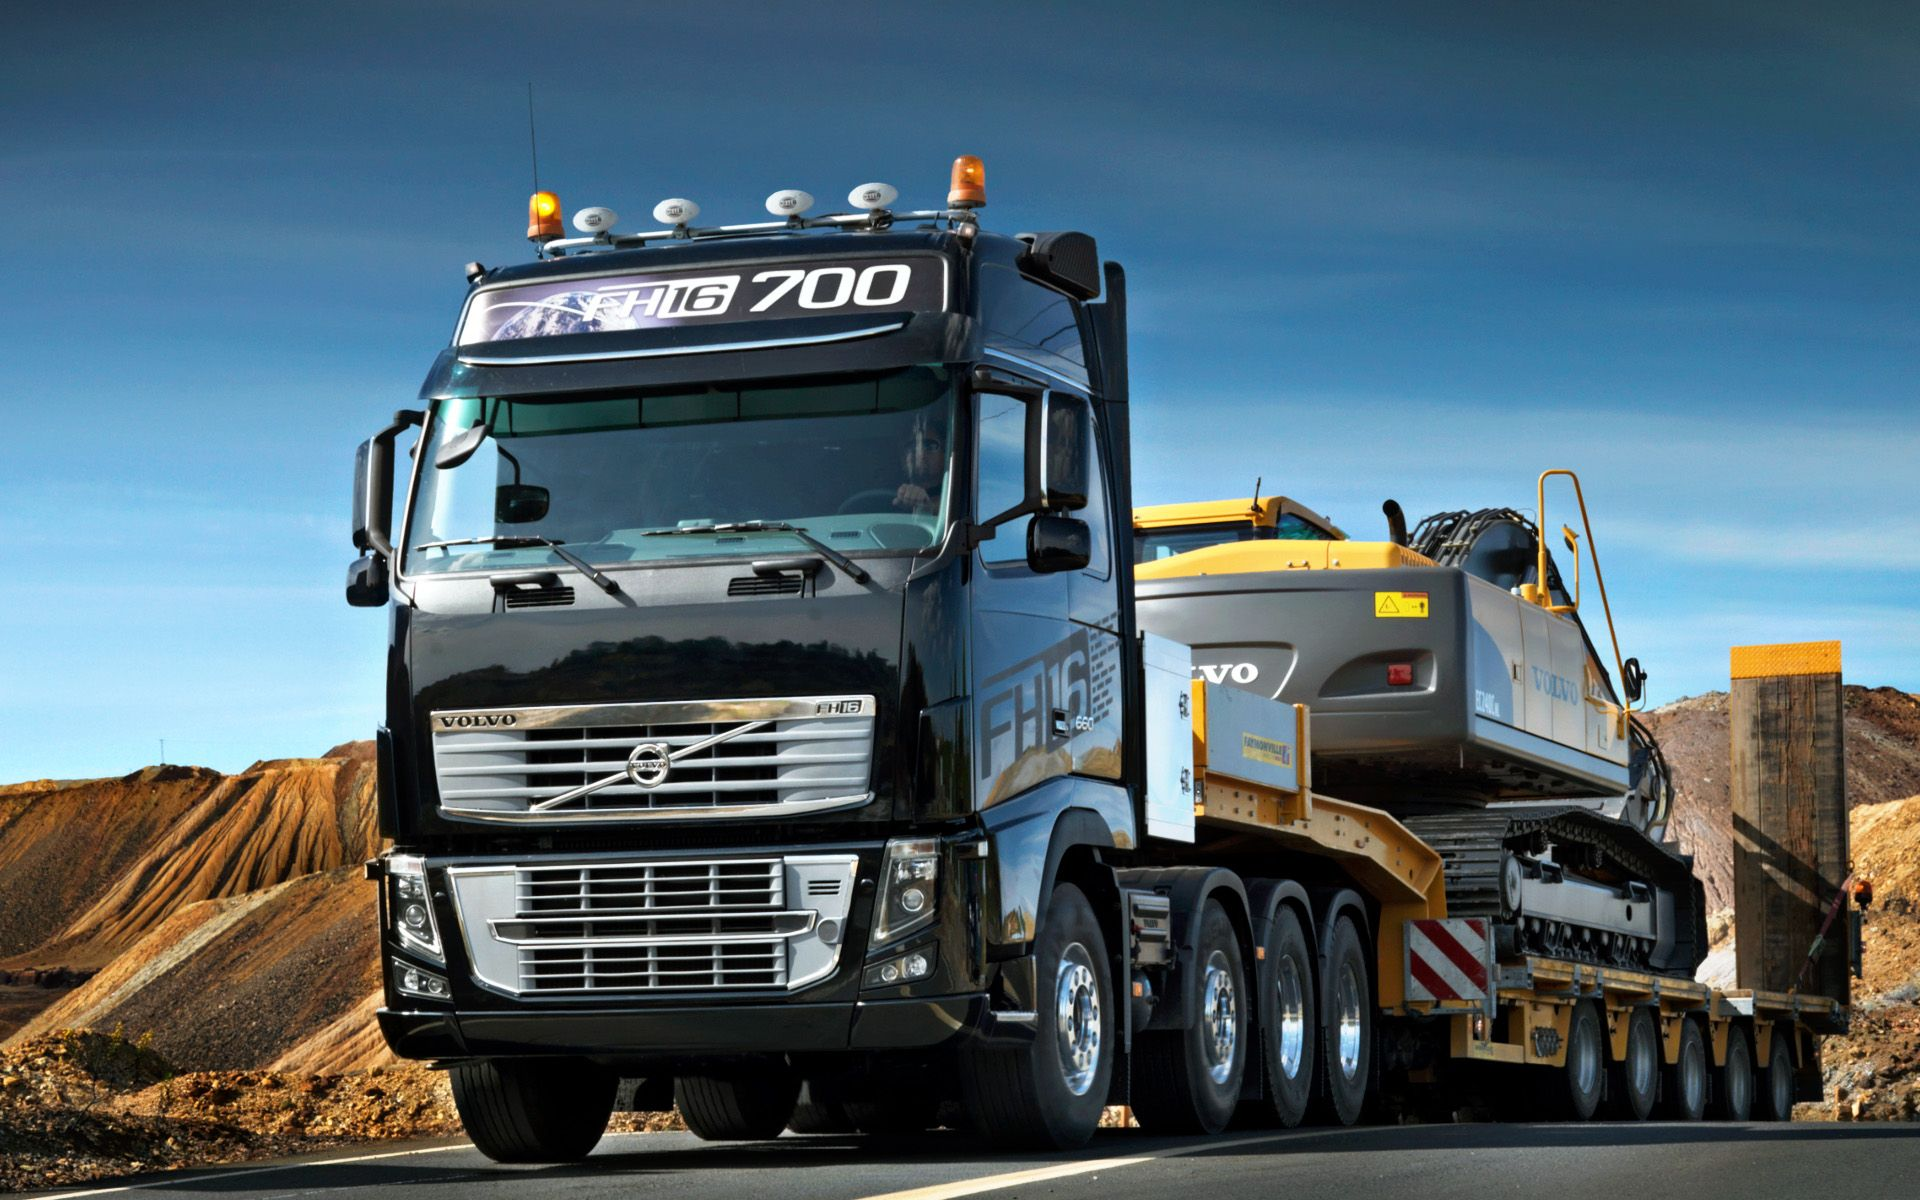 analysis of volvo trucks Volvo vision 2020 cars are driven by people the guiding principle behind everything we make at volvo, therefore, is and must remain - safety.